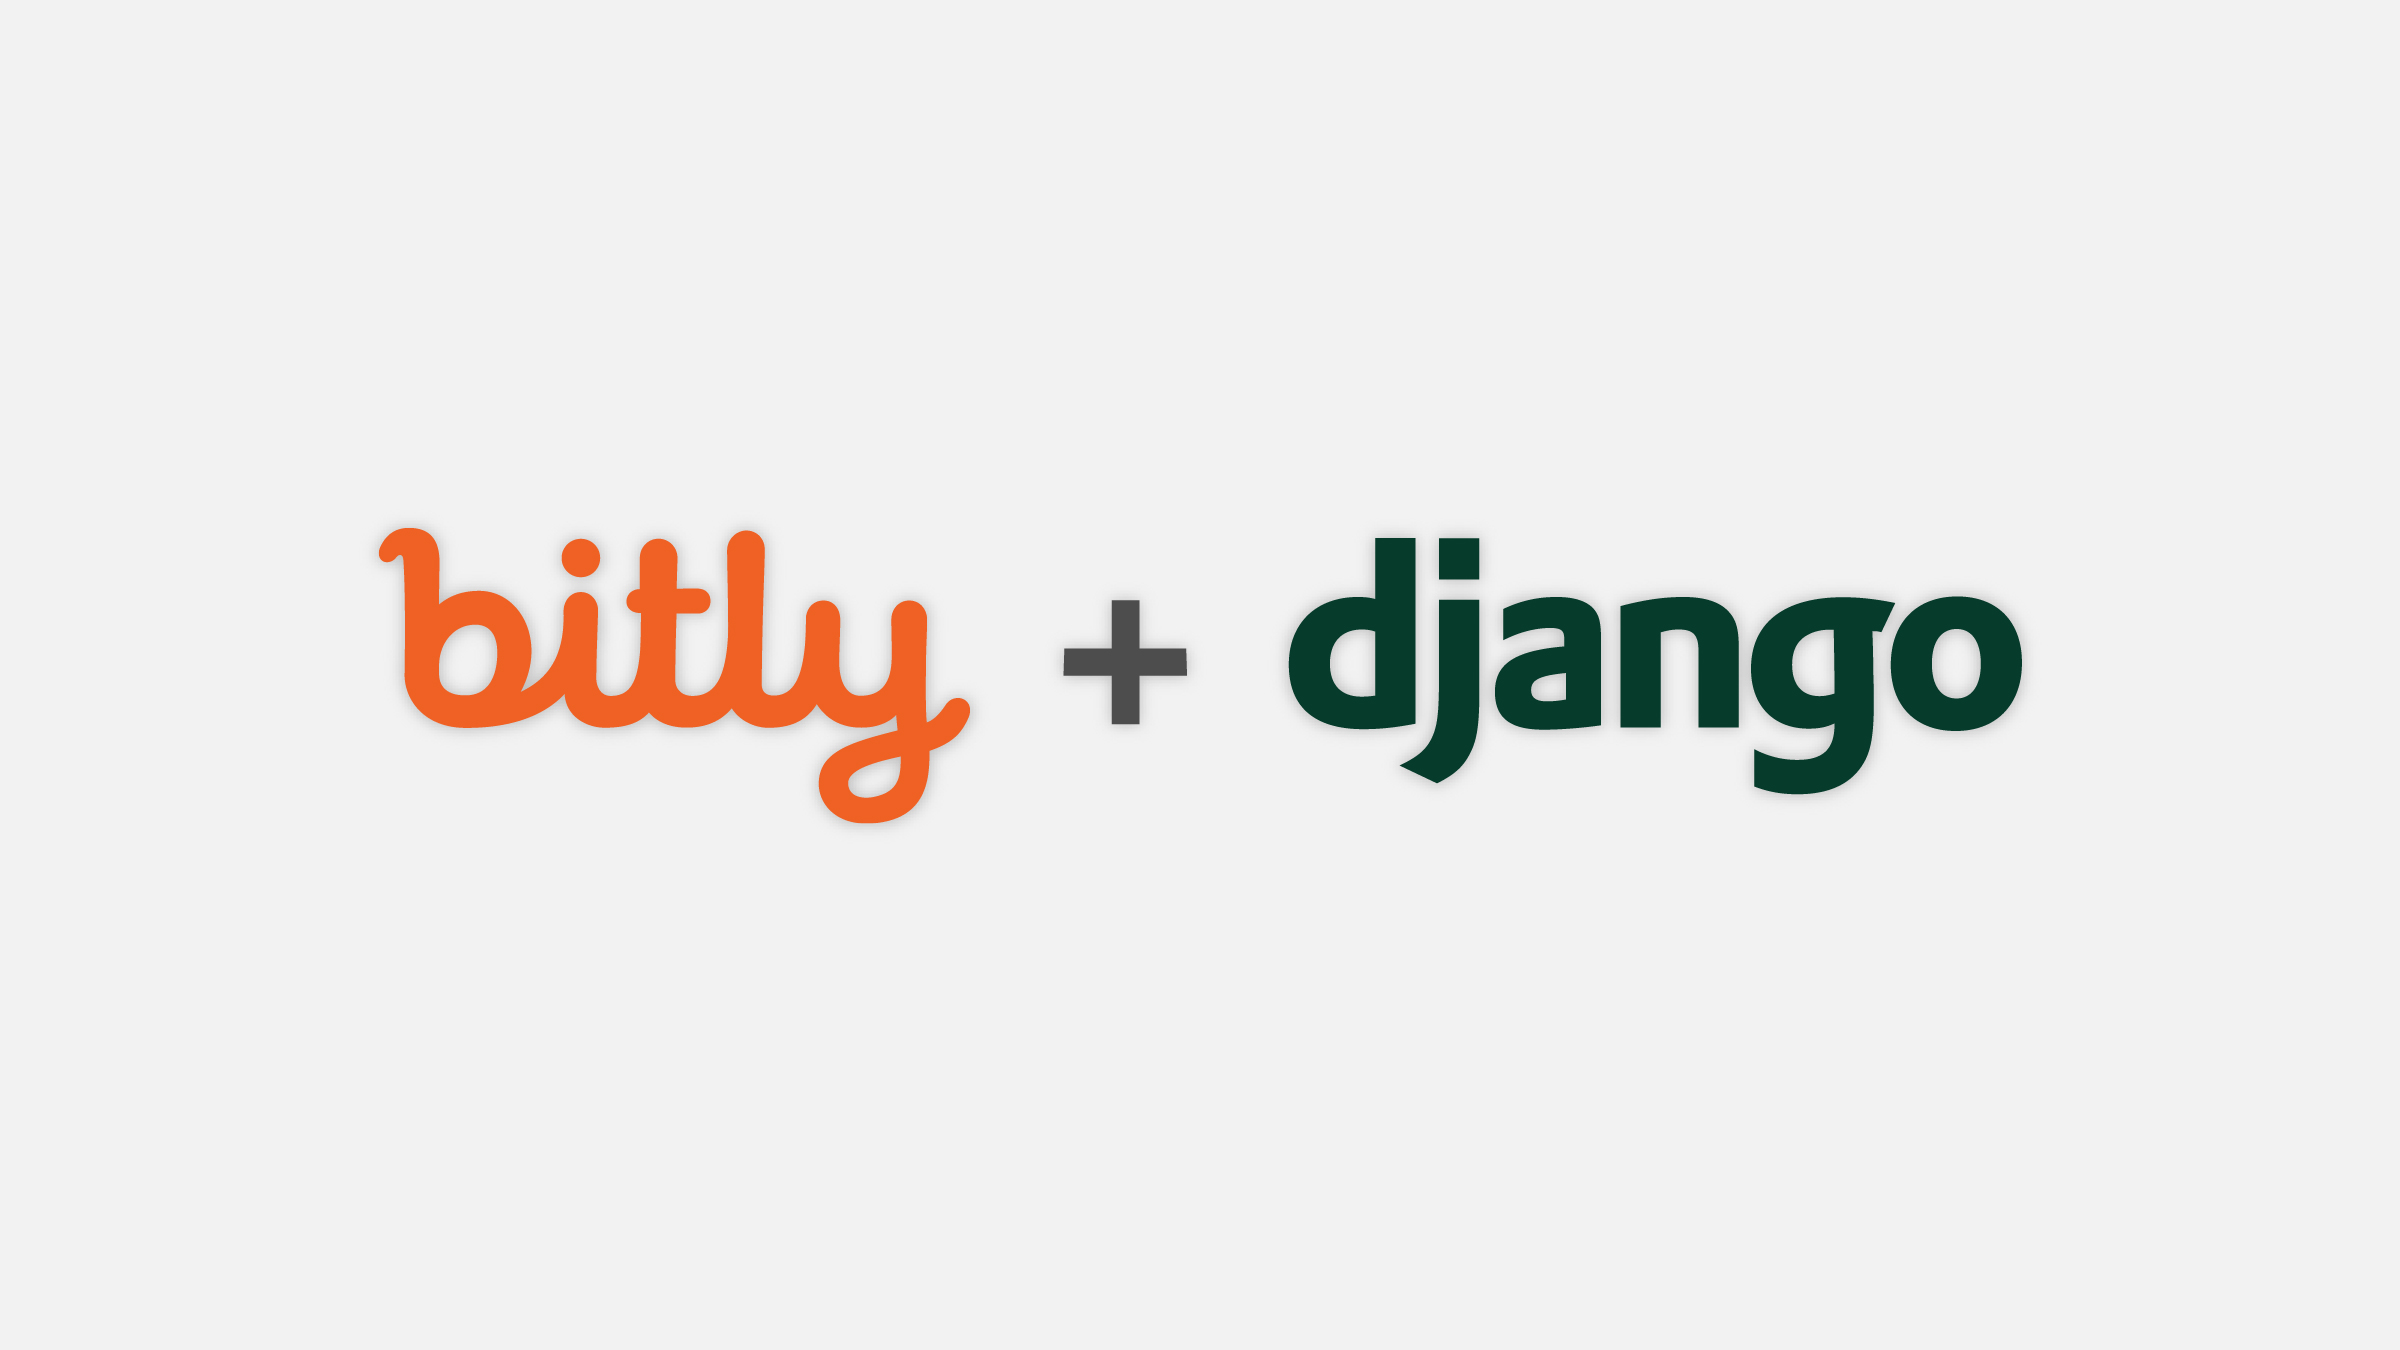 the bitly logo, a plus sign, and the django logo in a row